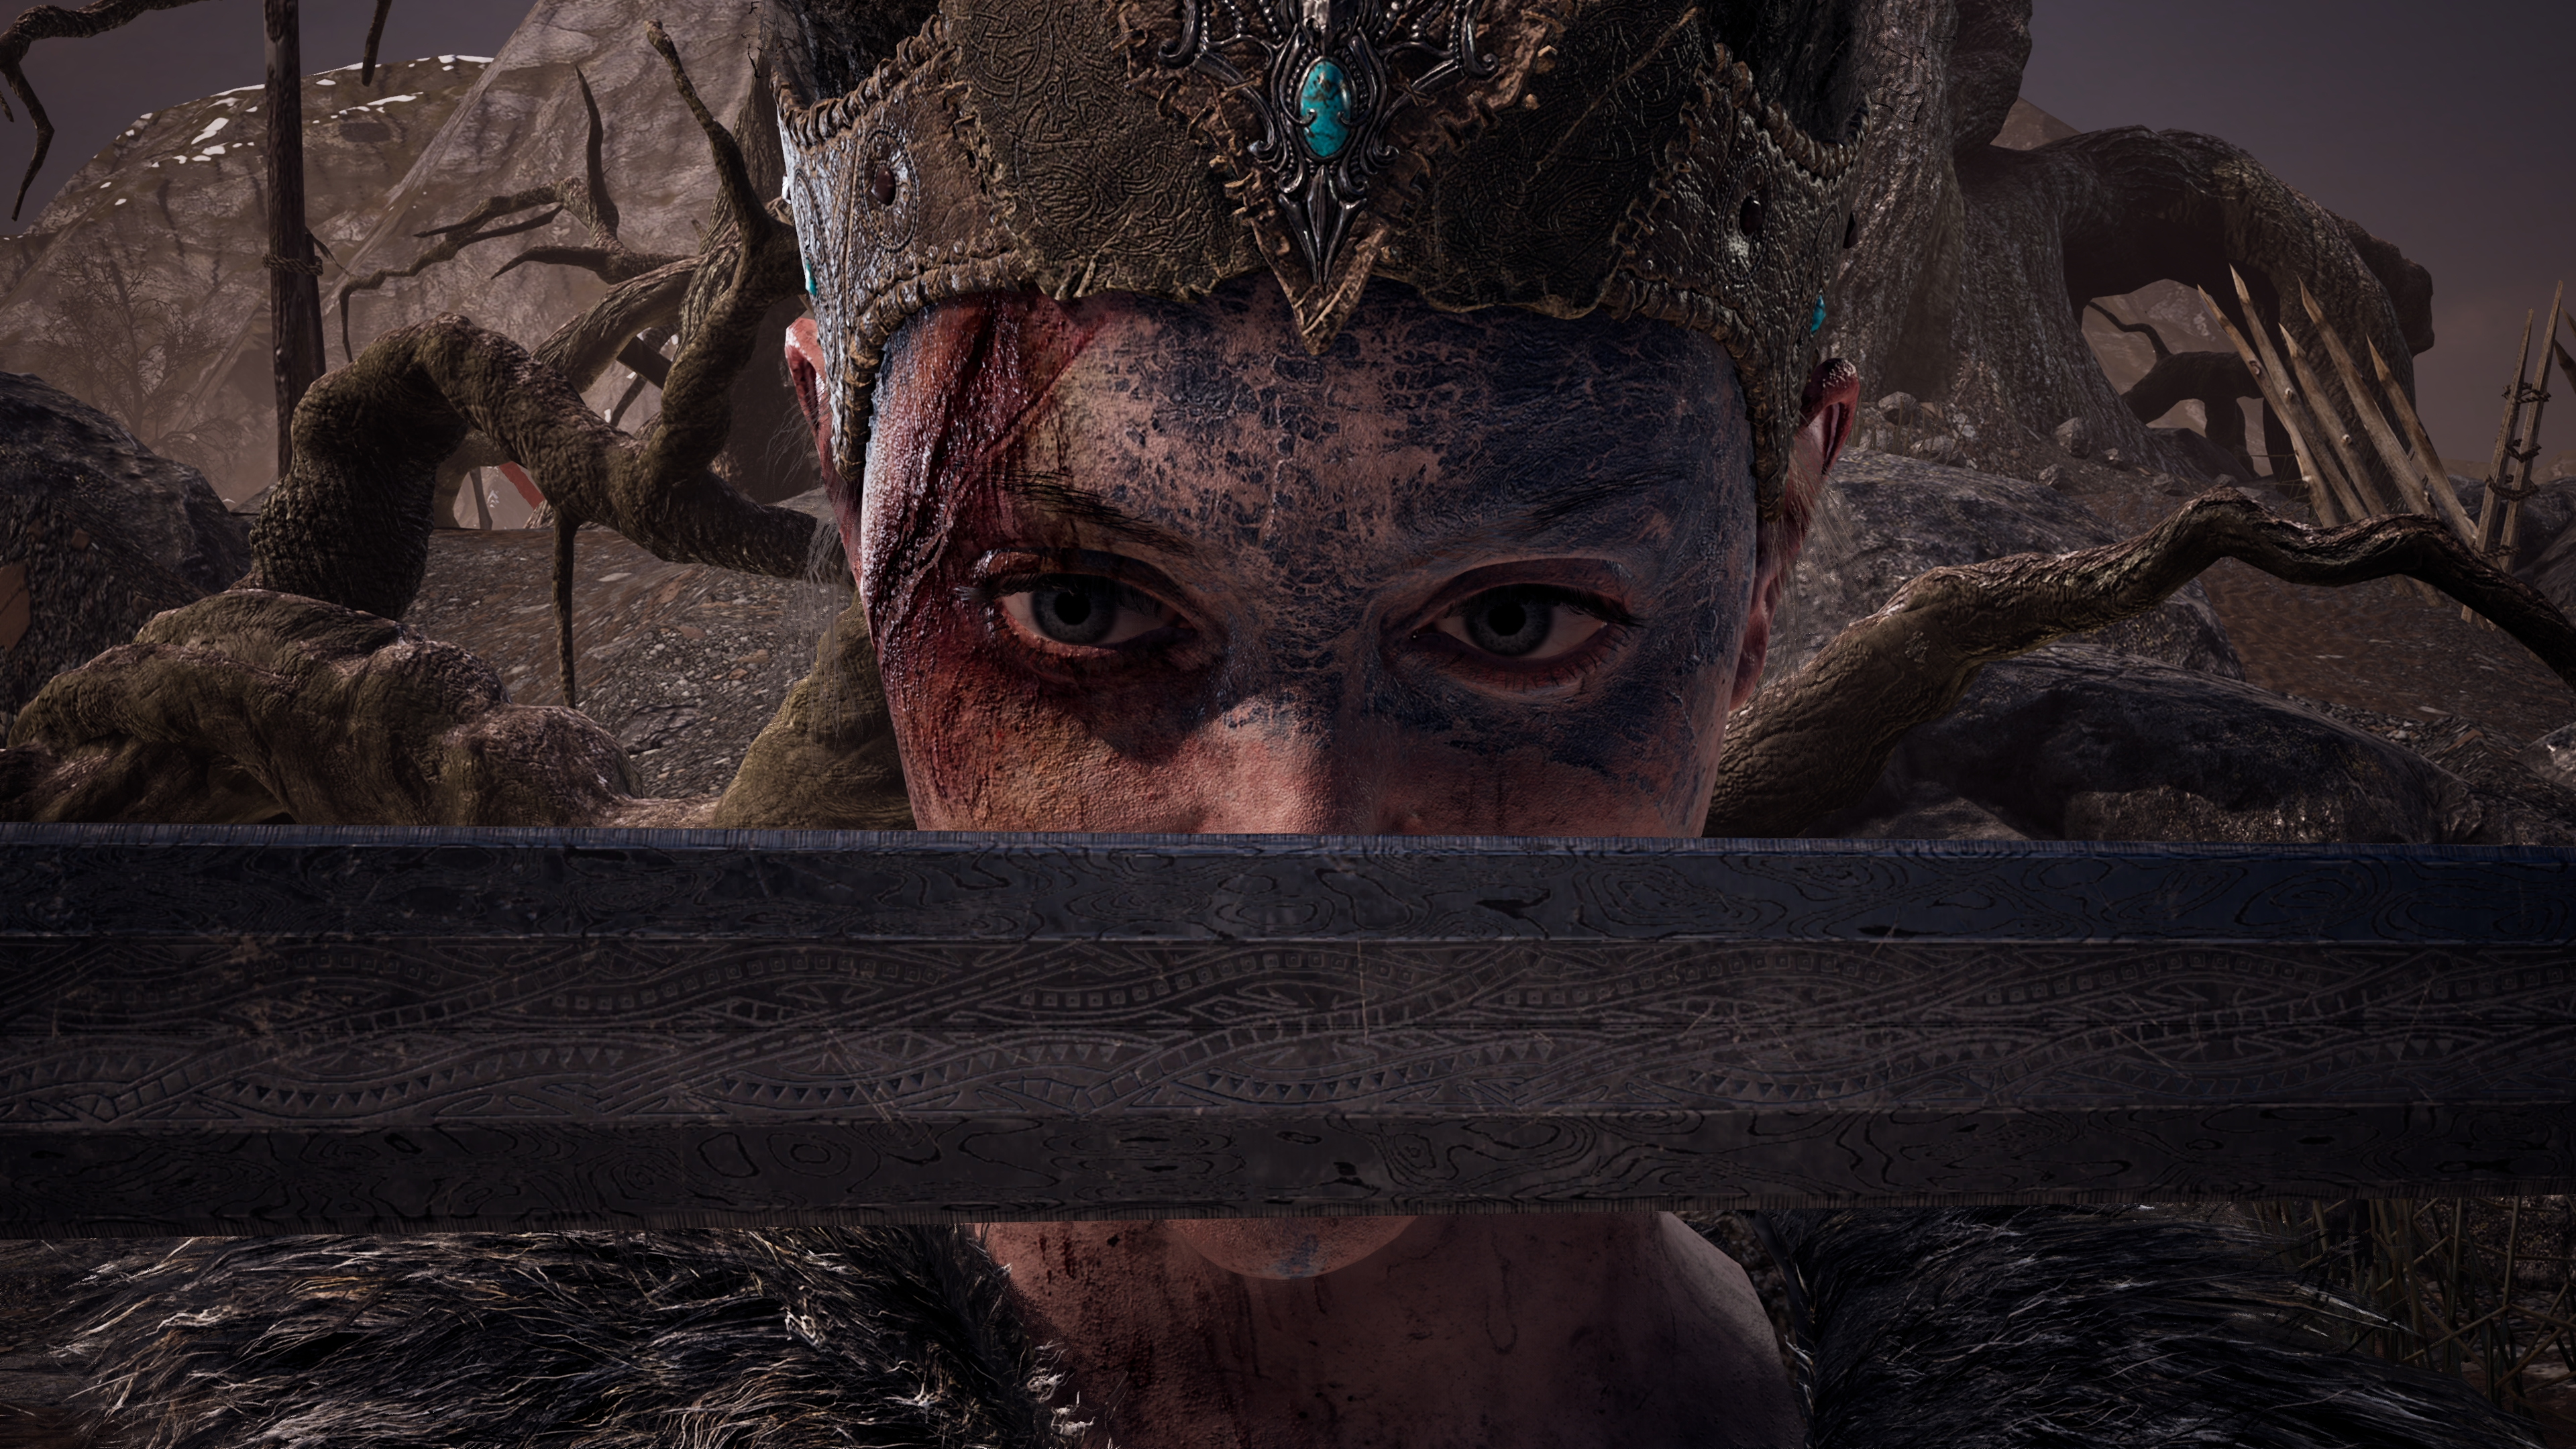 Hellblade senuas sacrifice 4k ultra hd wallpaper background image 3840x2160 id 866158 - Sacrifice wallpaper ...